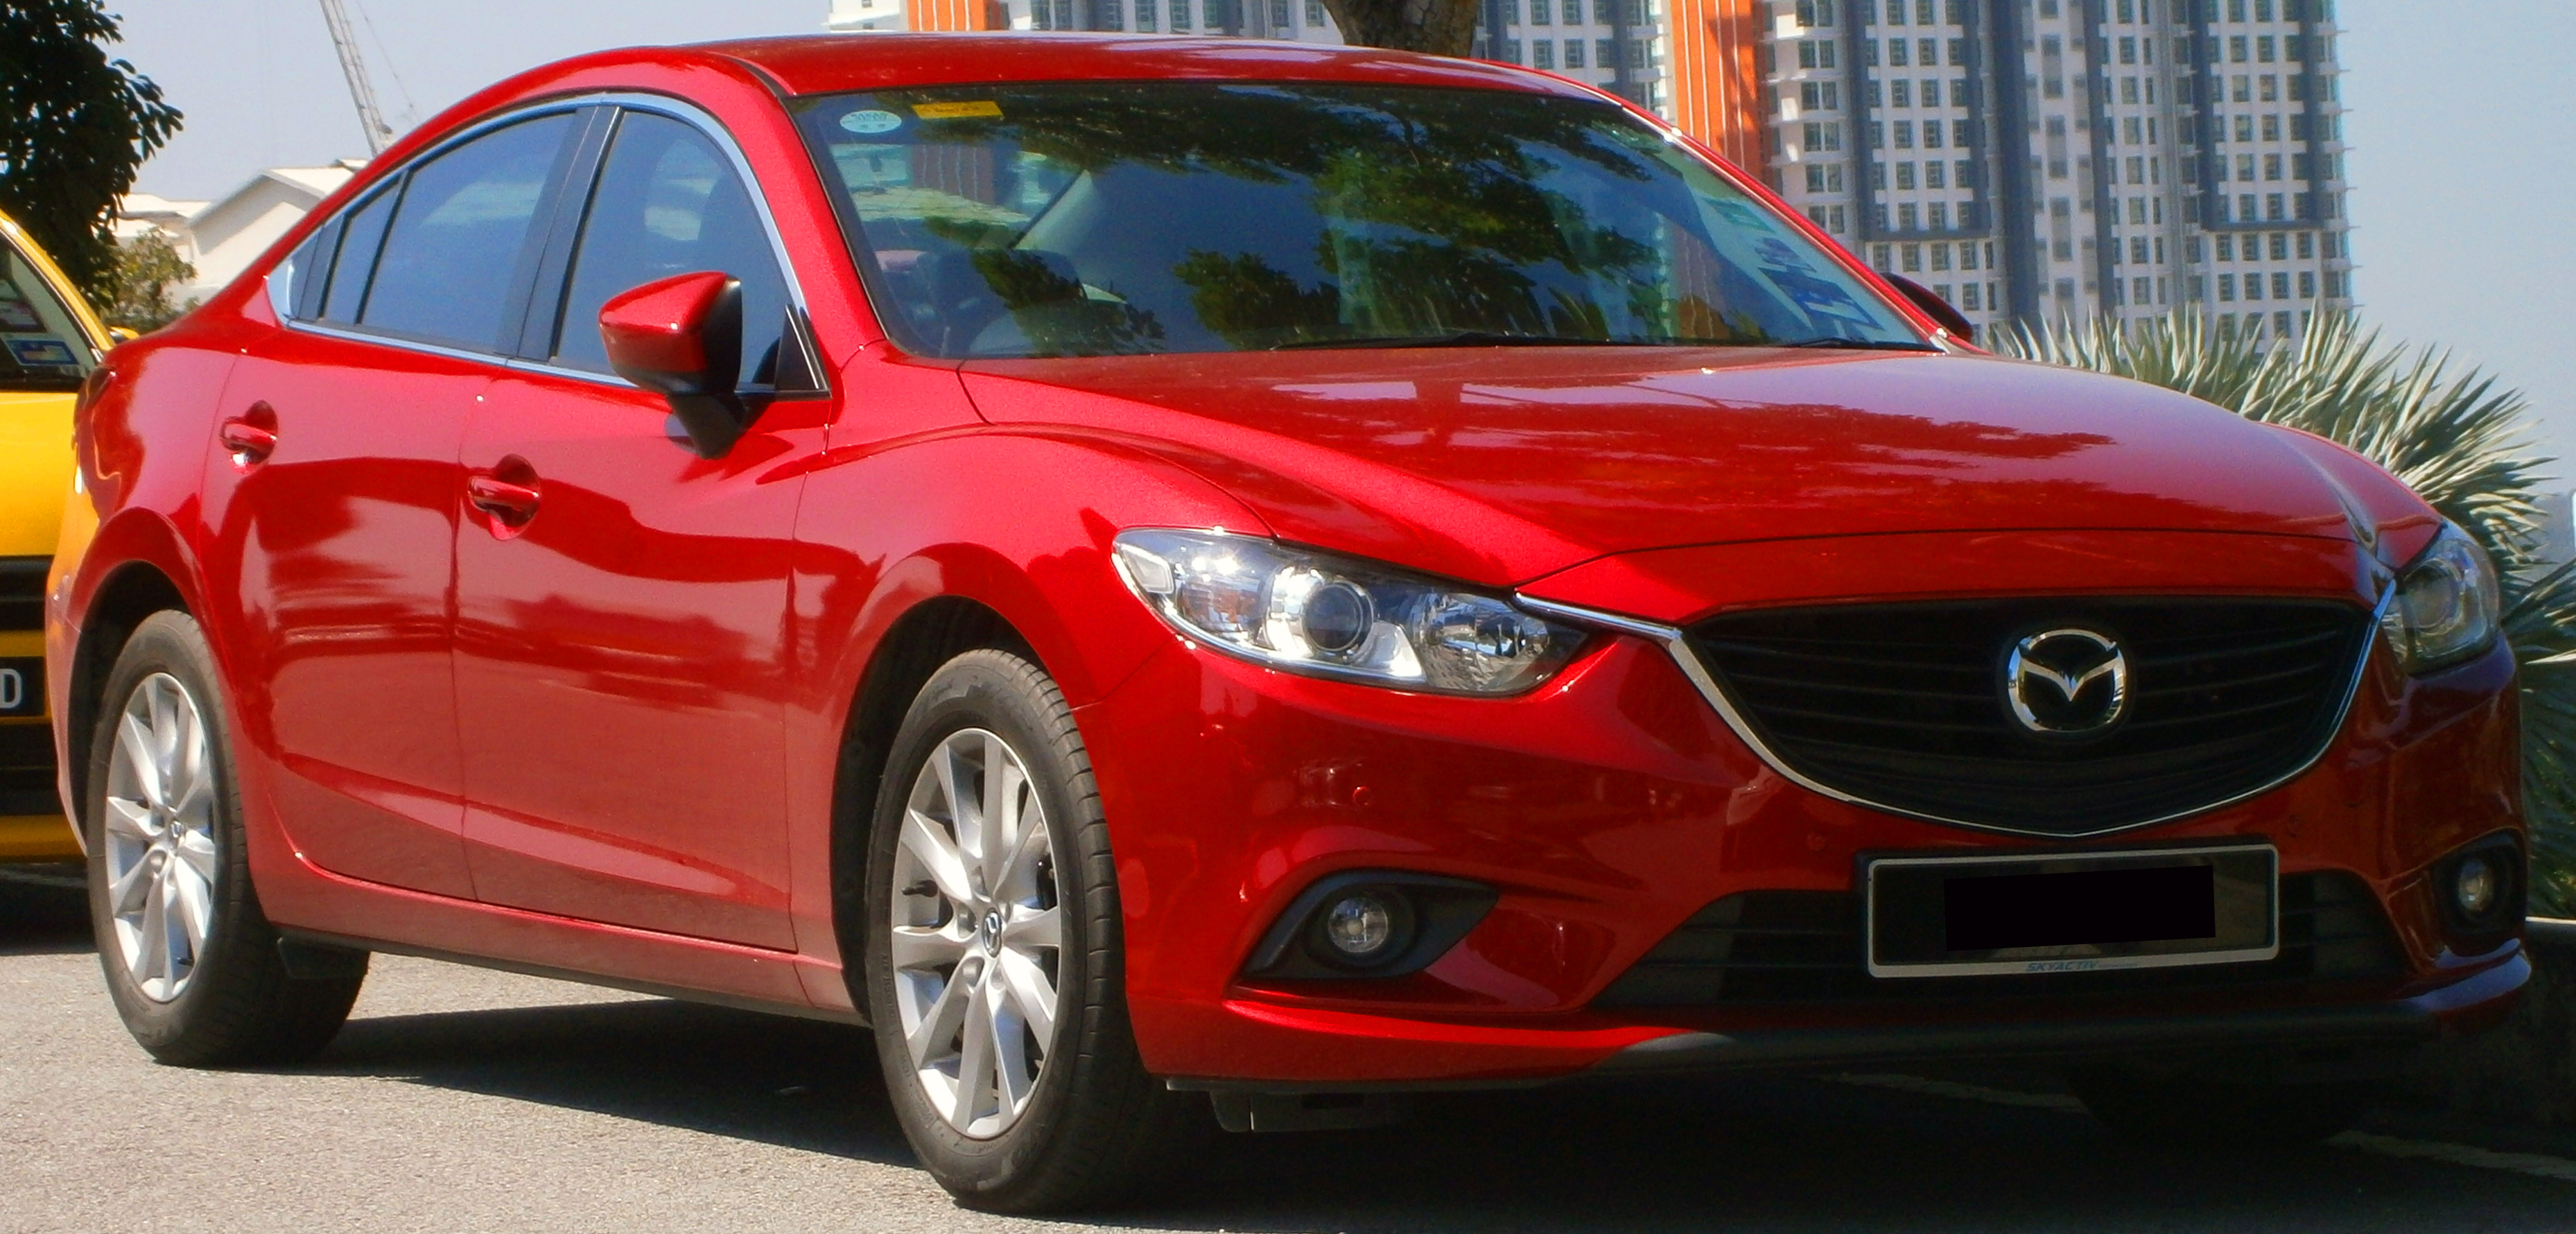 file 2013 mazda6 2 0 saloon in cyberjaya malaysia 01 jpg wikimedia commons. Black Bedroom Furniture Sets. Home Design Ideas